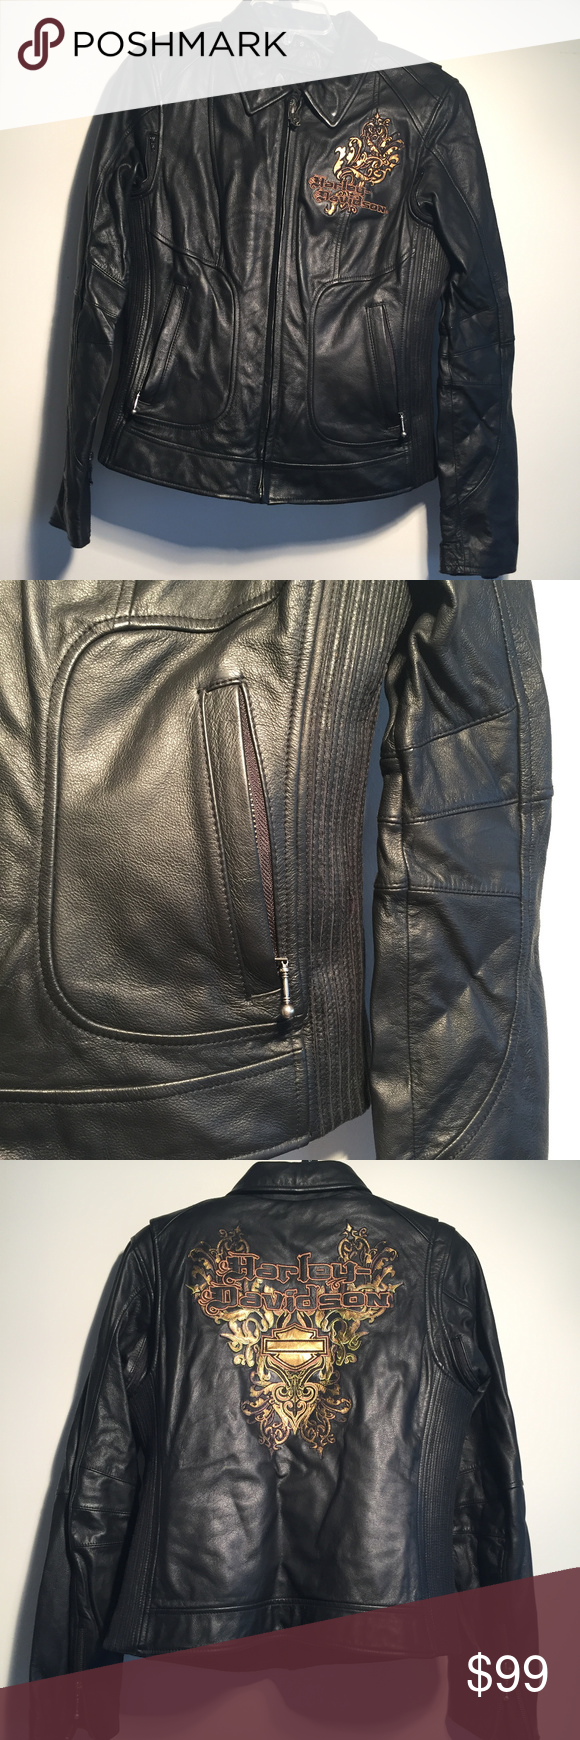 Harley Davidson Black leather embroidered jacket in 2020